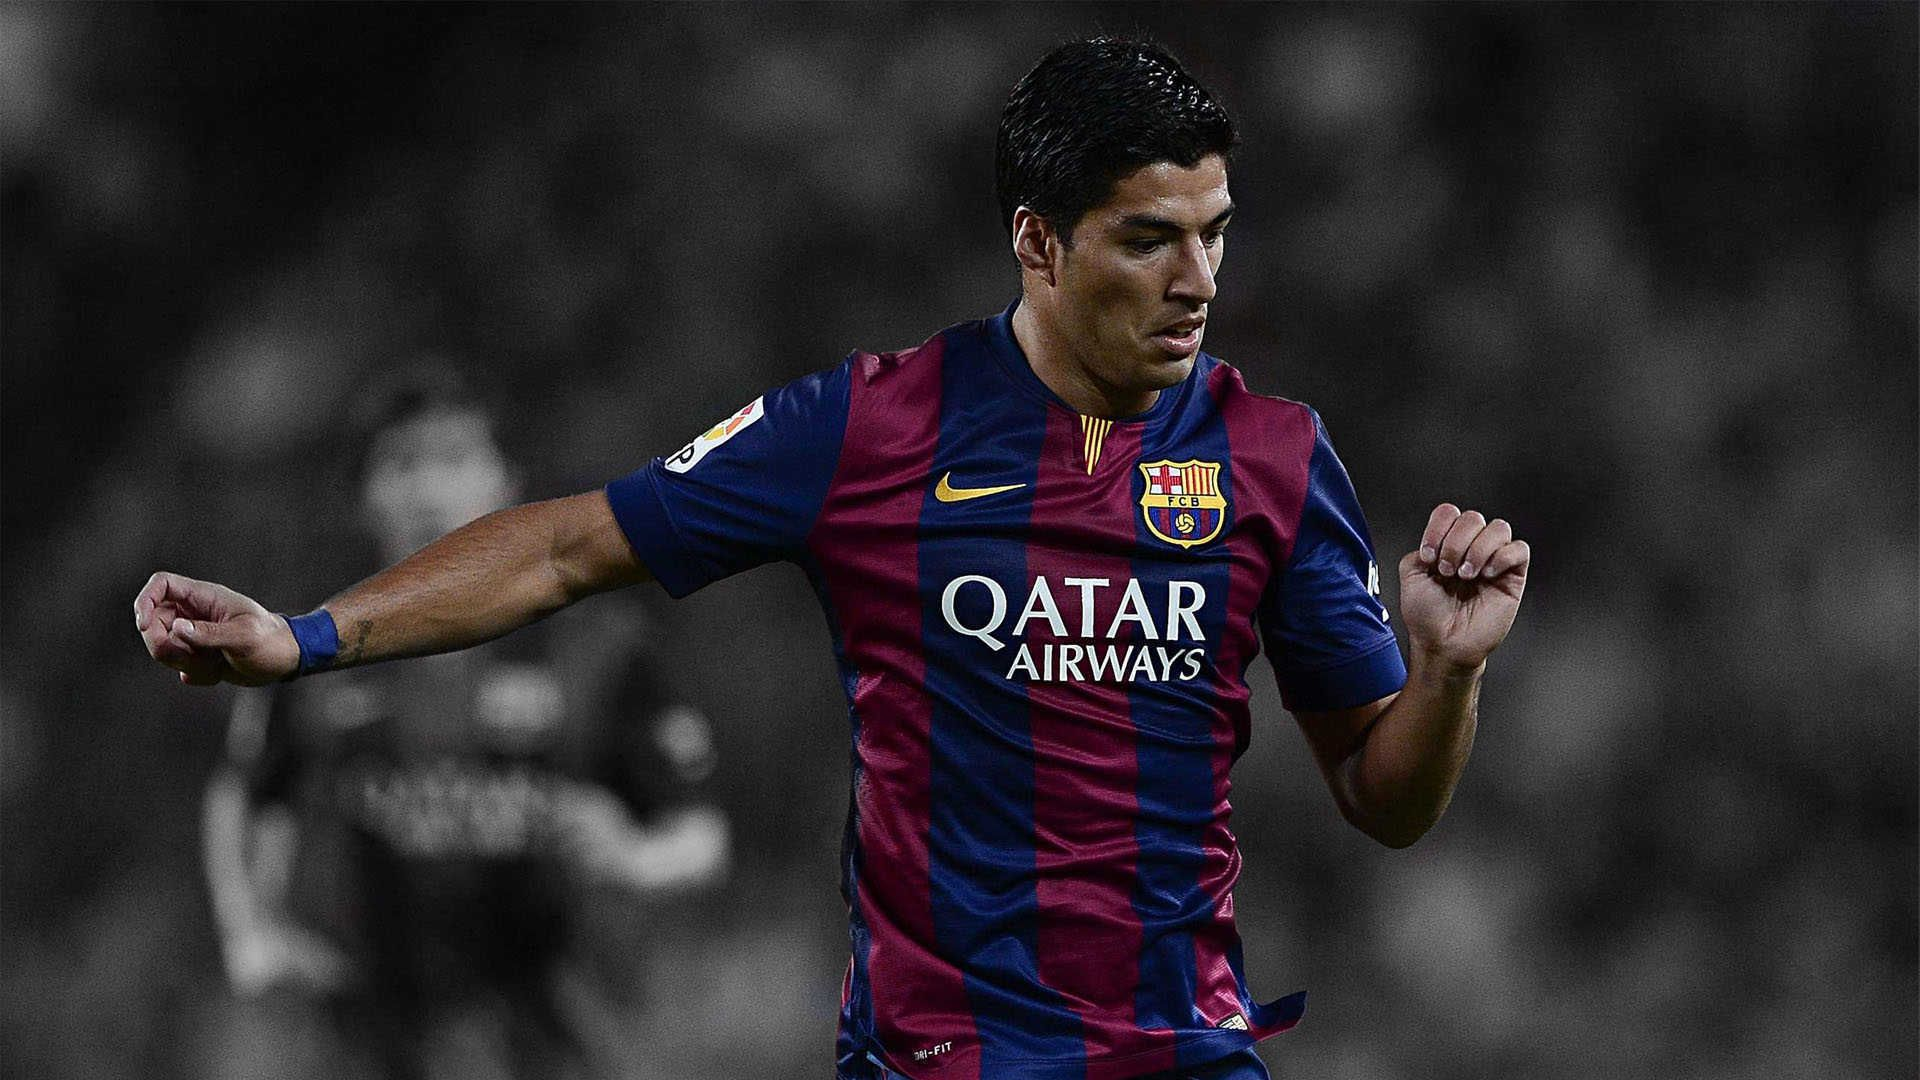 Luis Suarez Wallpapers High Resolution and Quality Download 1920 ...